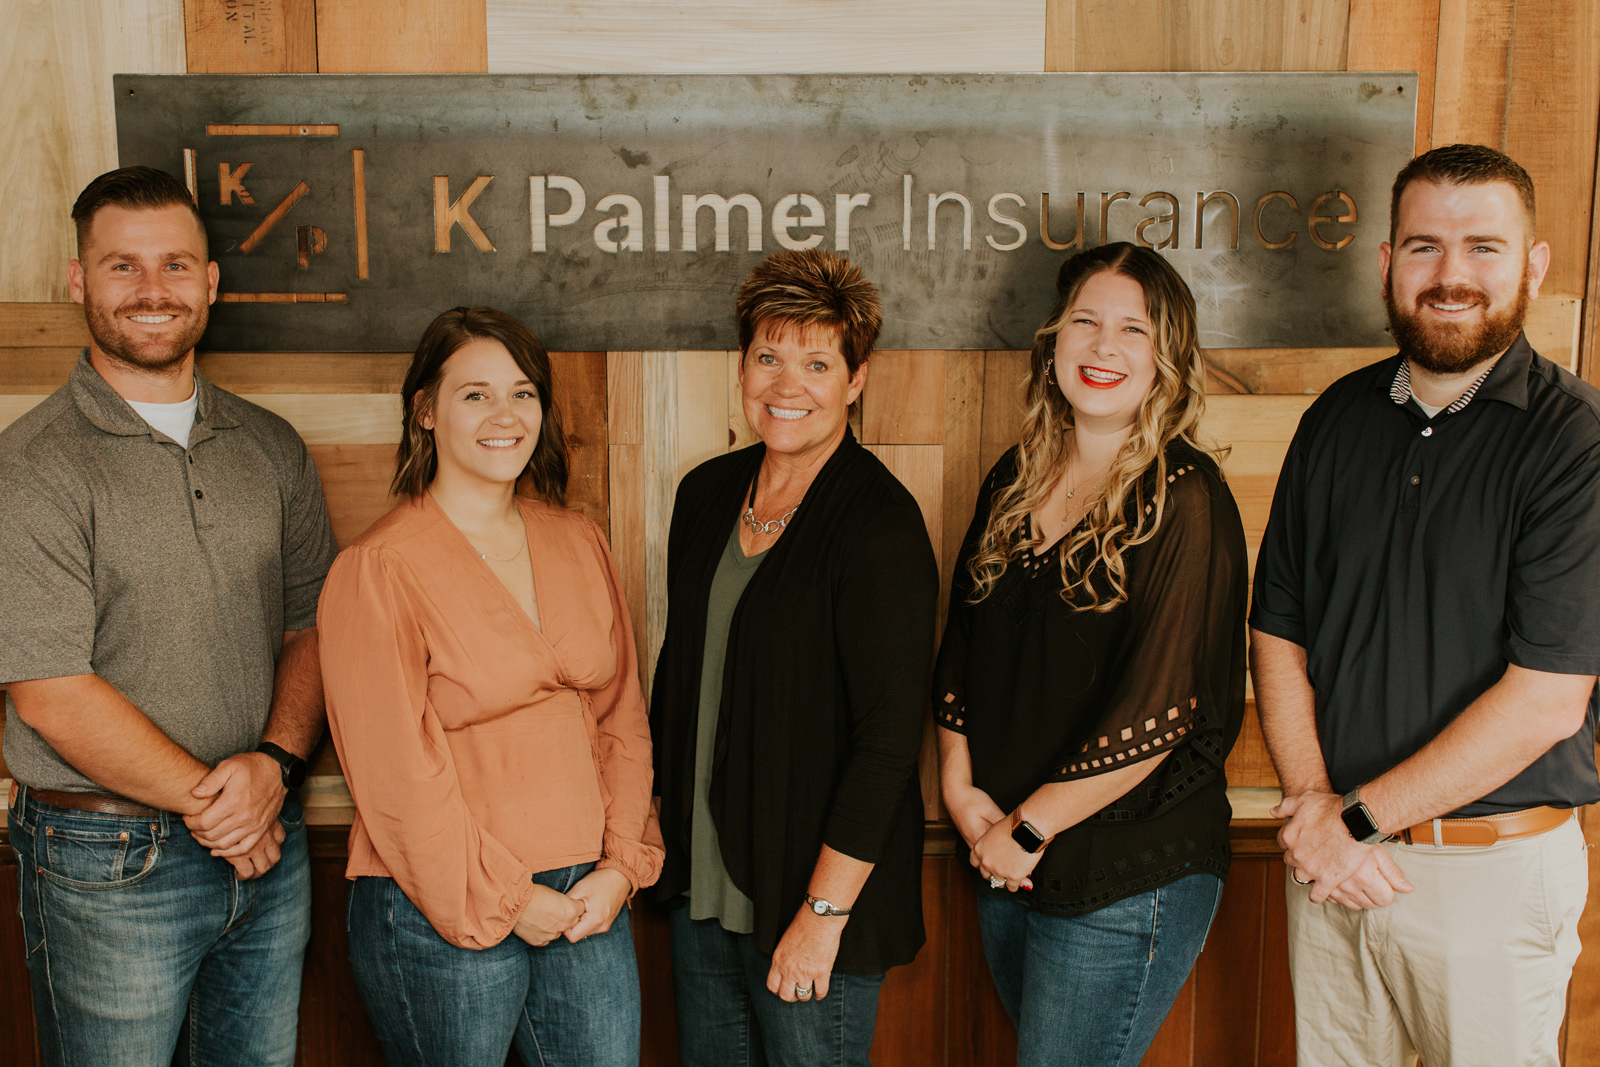 A happy K Palmer team standing in front of a wall with a logo.